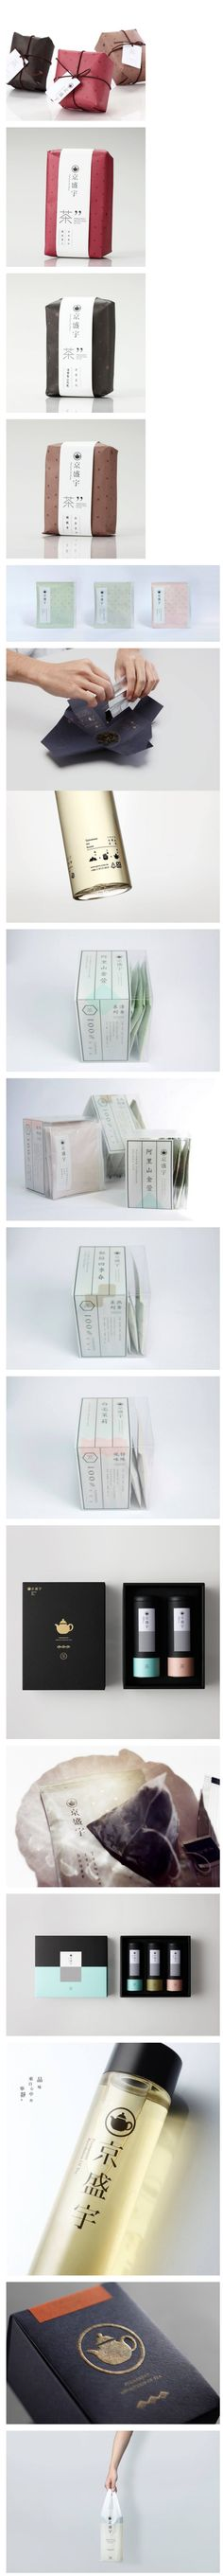 (referring to the tea packaging up top) Evokes Asian. Maybe a bit too boring though. Japanese Packaging, Cool Packaging, Paper Packaging, Coffee Packaging, Beverage Packaging, Brand Packaging, Packaging Design, Branding Design, Tea Design